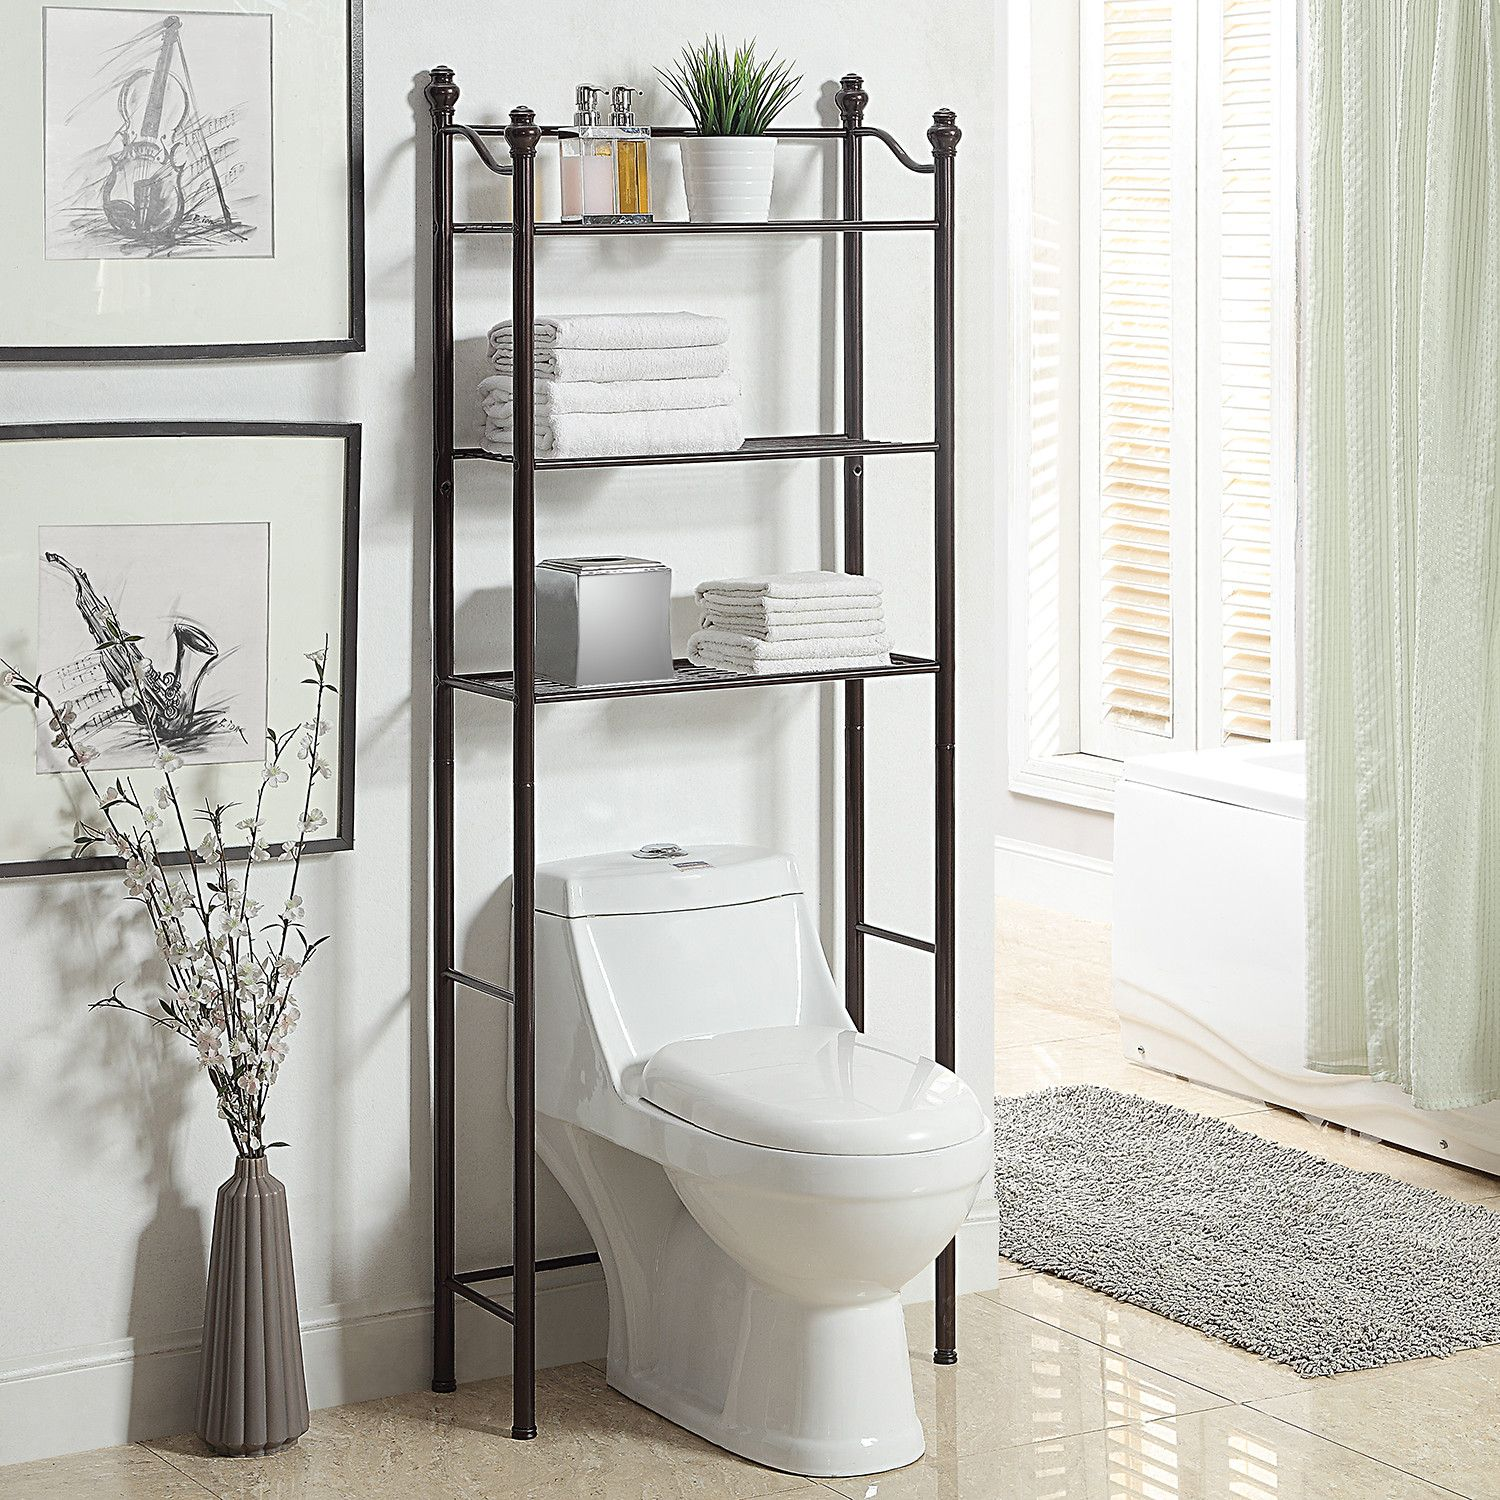 toilet saver furniture shelf spacesaver standing bar free freestanding over bath etagere bathroom the towel design small cabinet storage cabinets rack with space